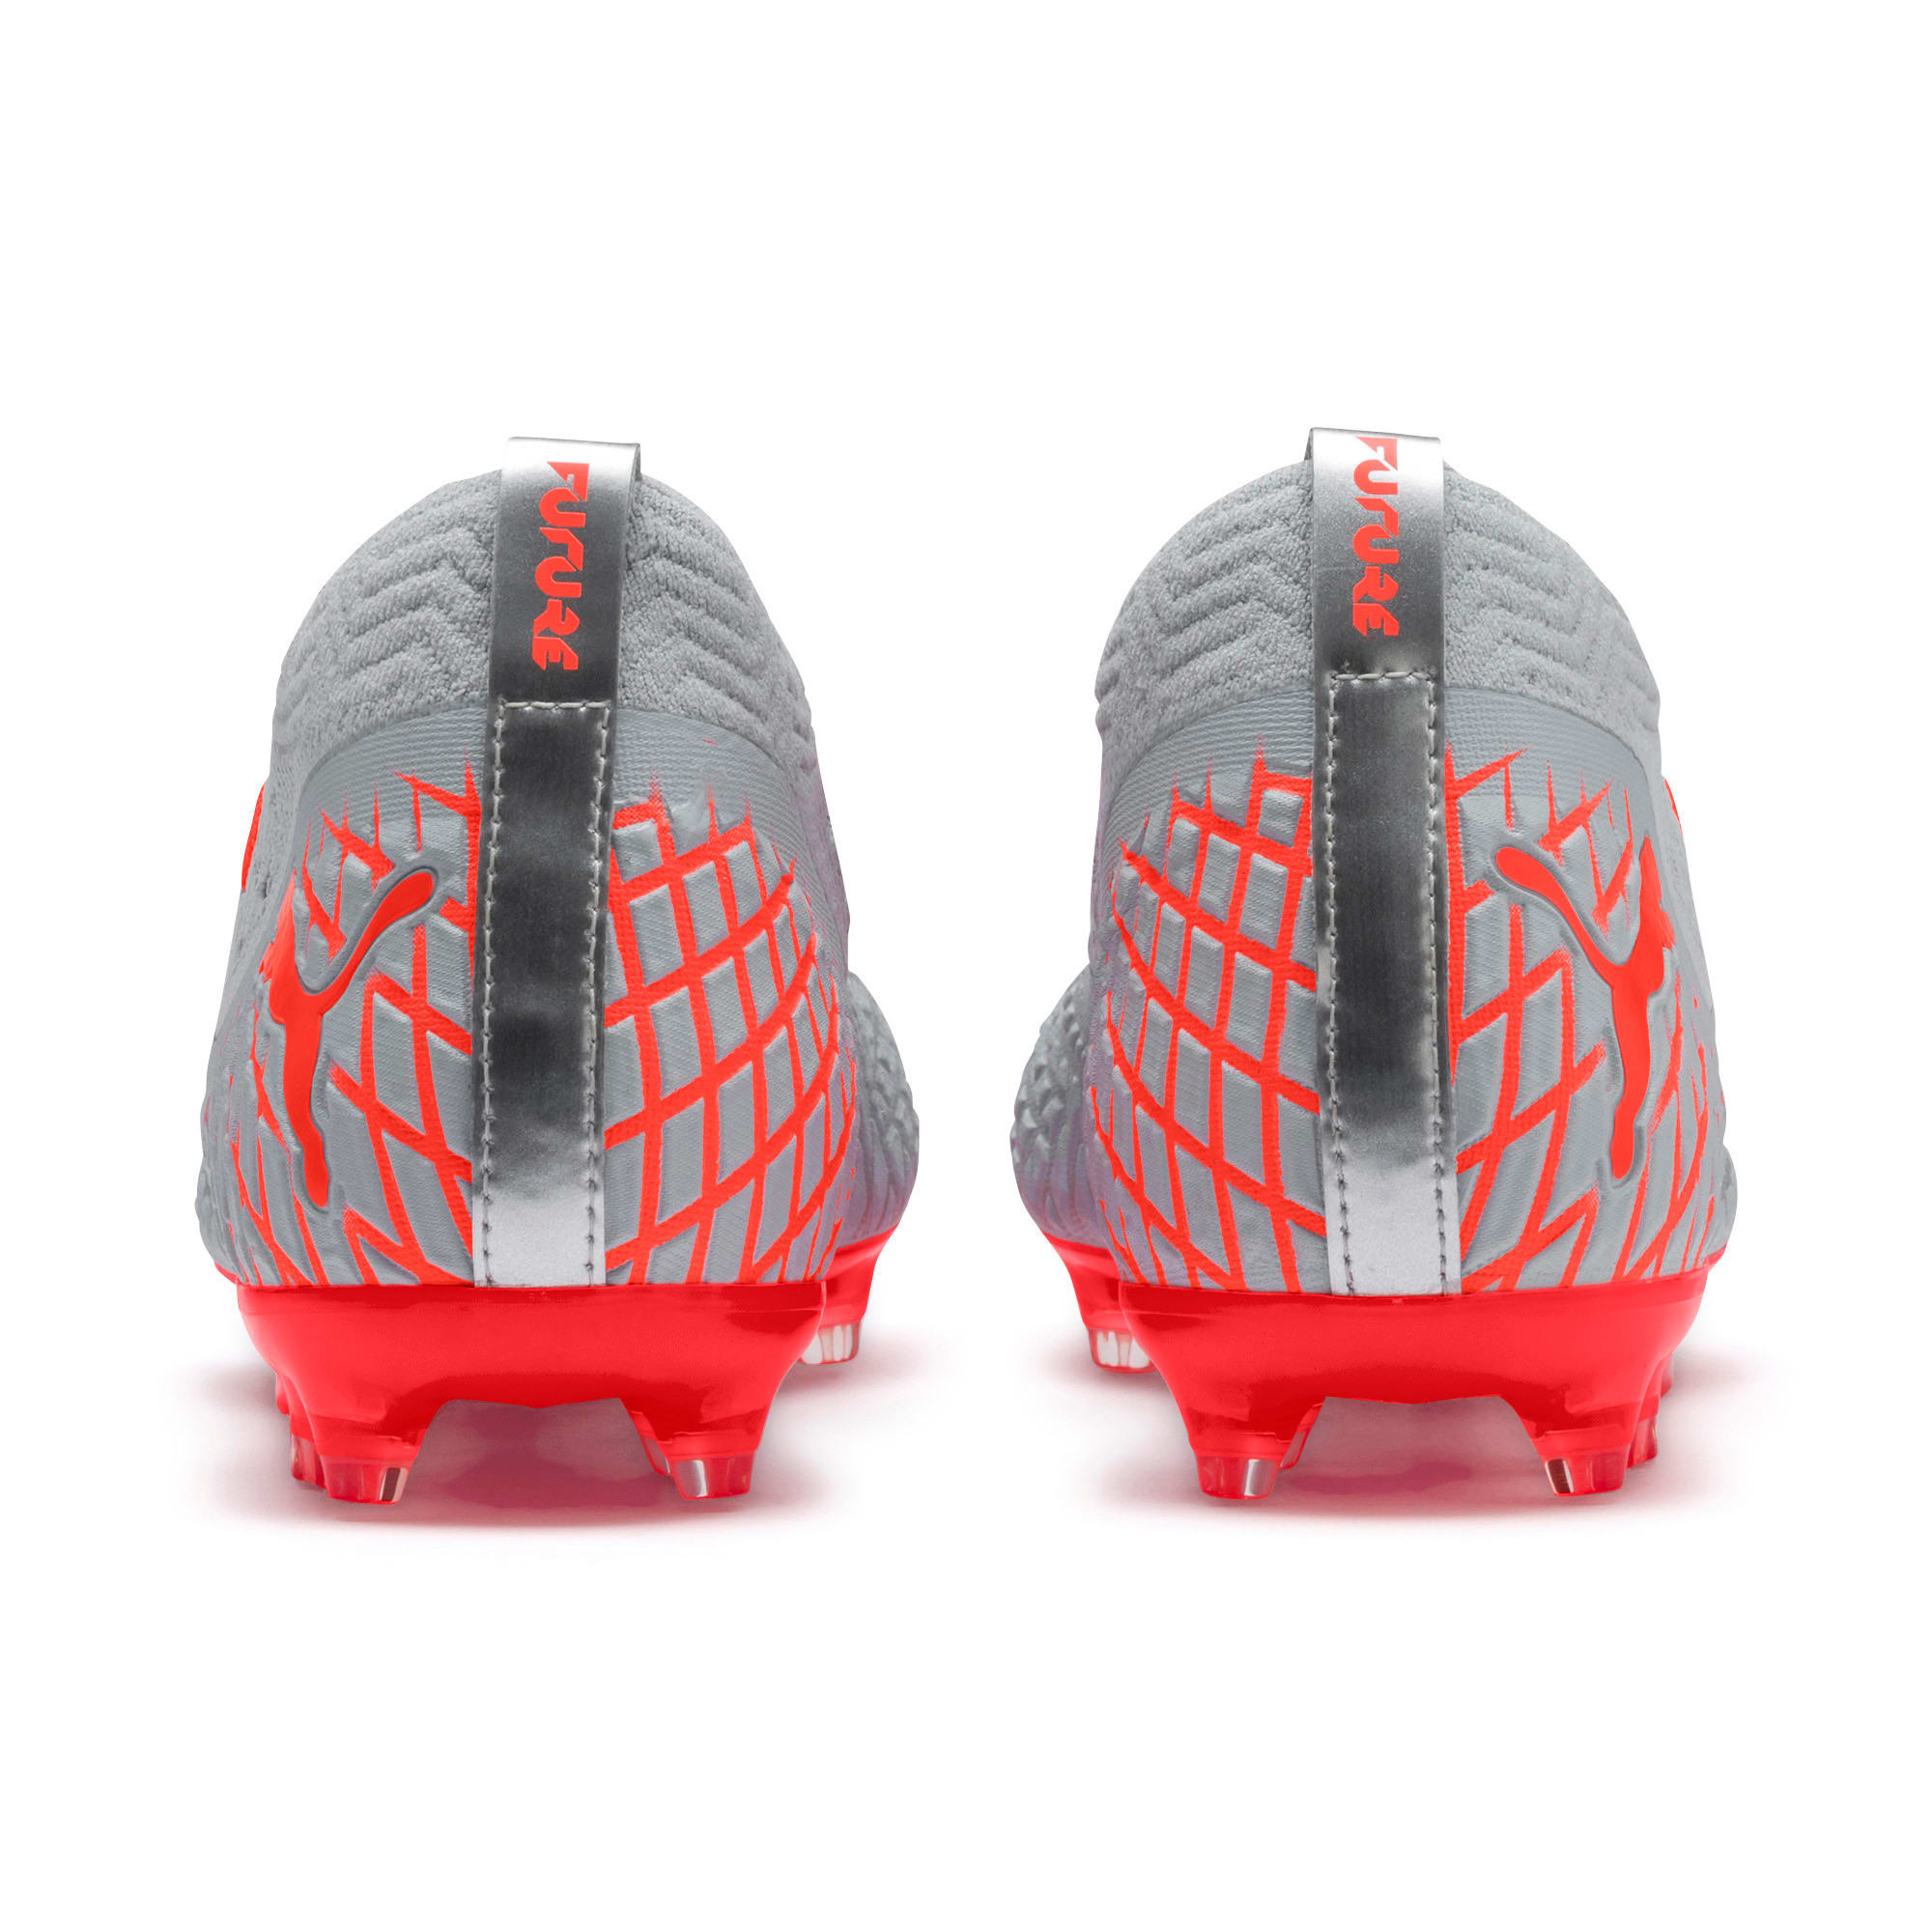 Thumbnail 4 of FUTURE 4.2 NETFIT FG/AG Men's Football Boots, Glacial Blue-Nrgy Red, medium